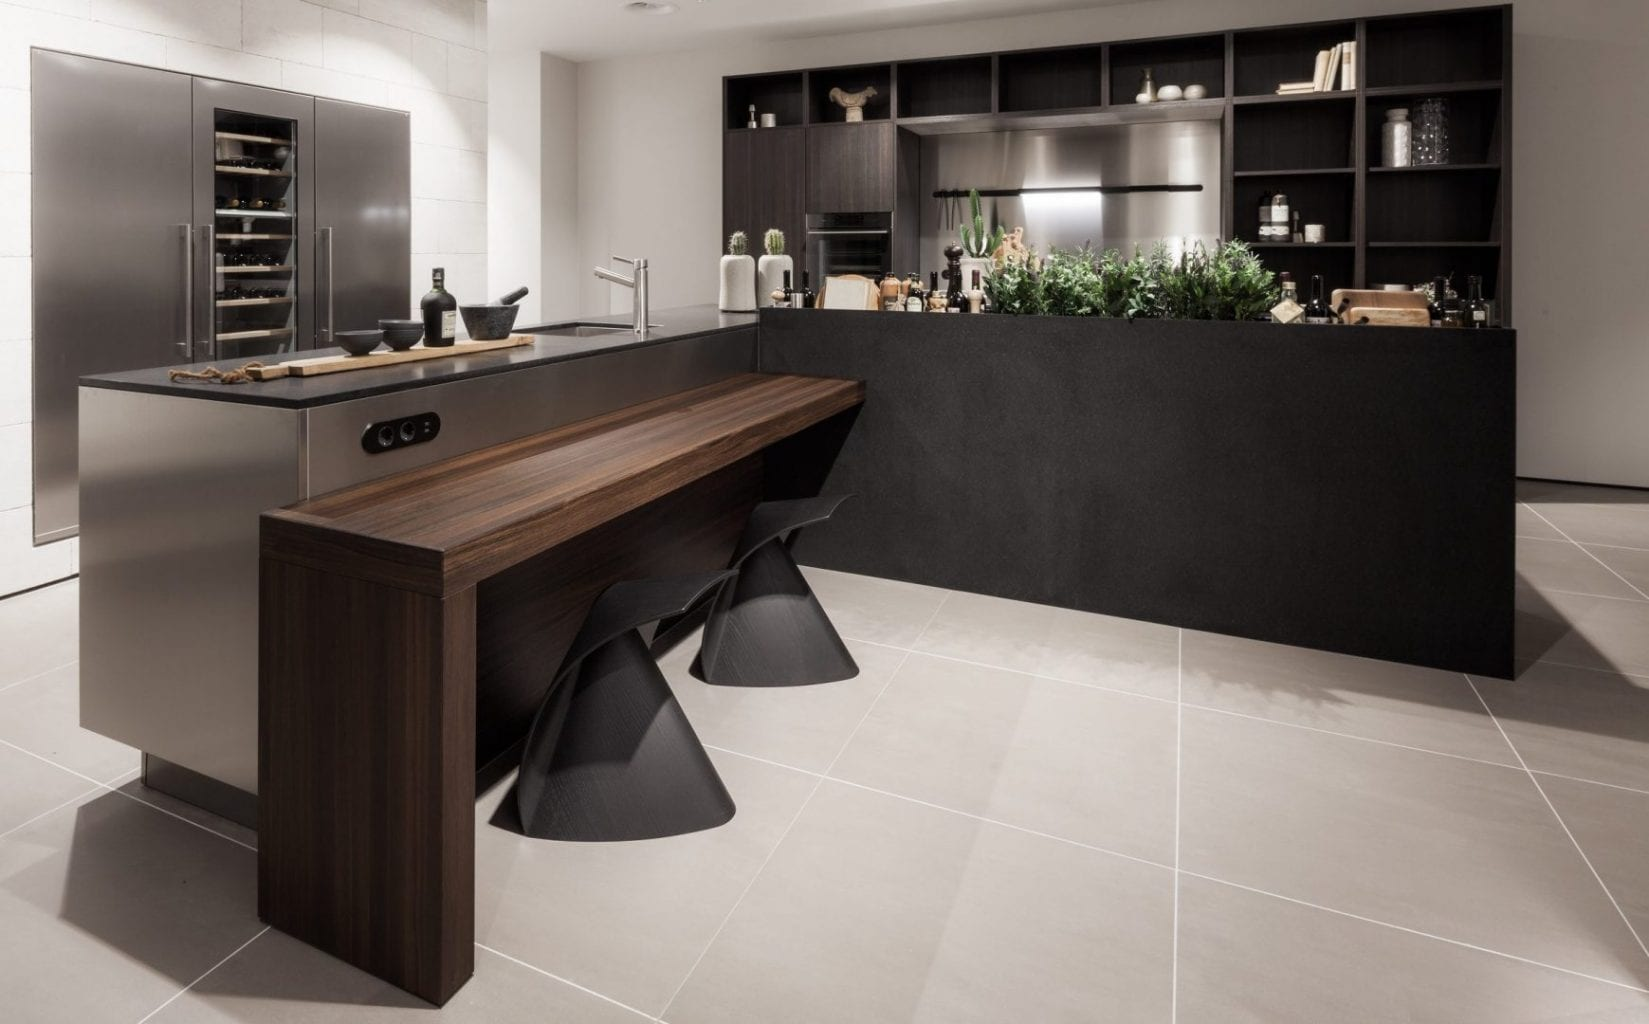 Siematic Design Keuken Siematic Urban Keuken S9 Goergen Keukens Uw Siematic Dealer